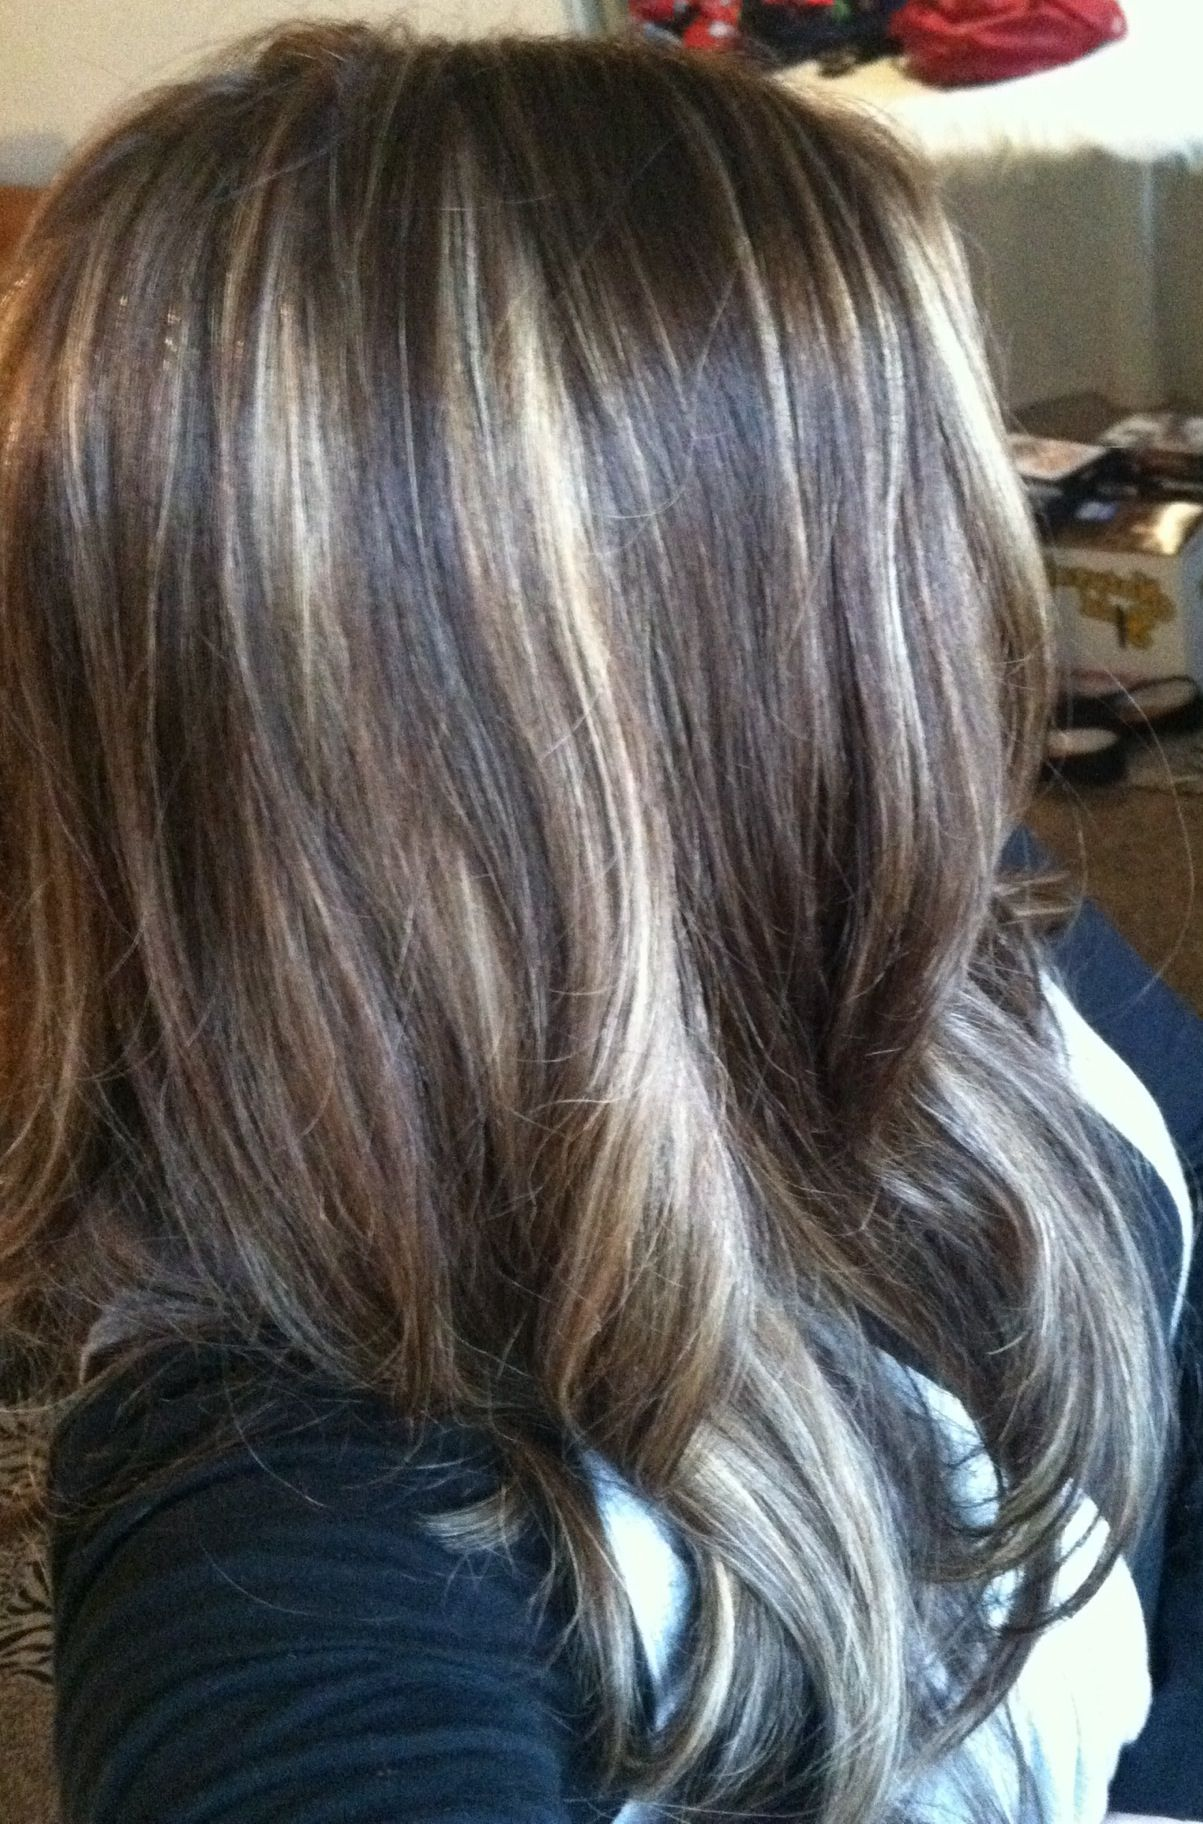 Pin By Alisa Meredith On Hair Dark Hair With Highlights Blonde Highlights On Dark Hair Hair Styles